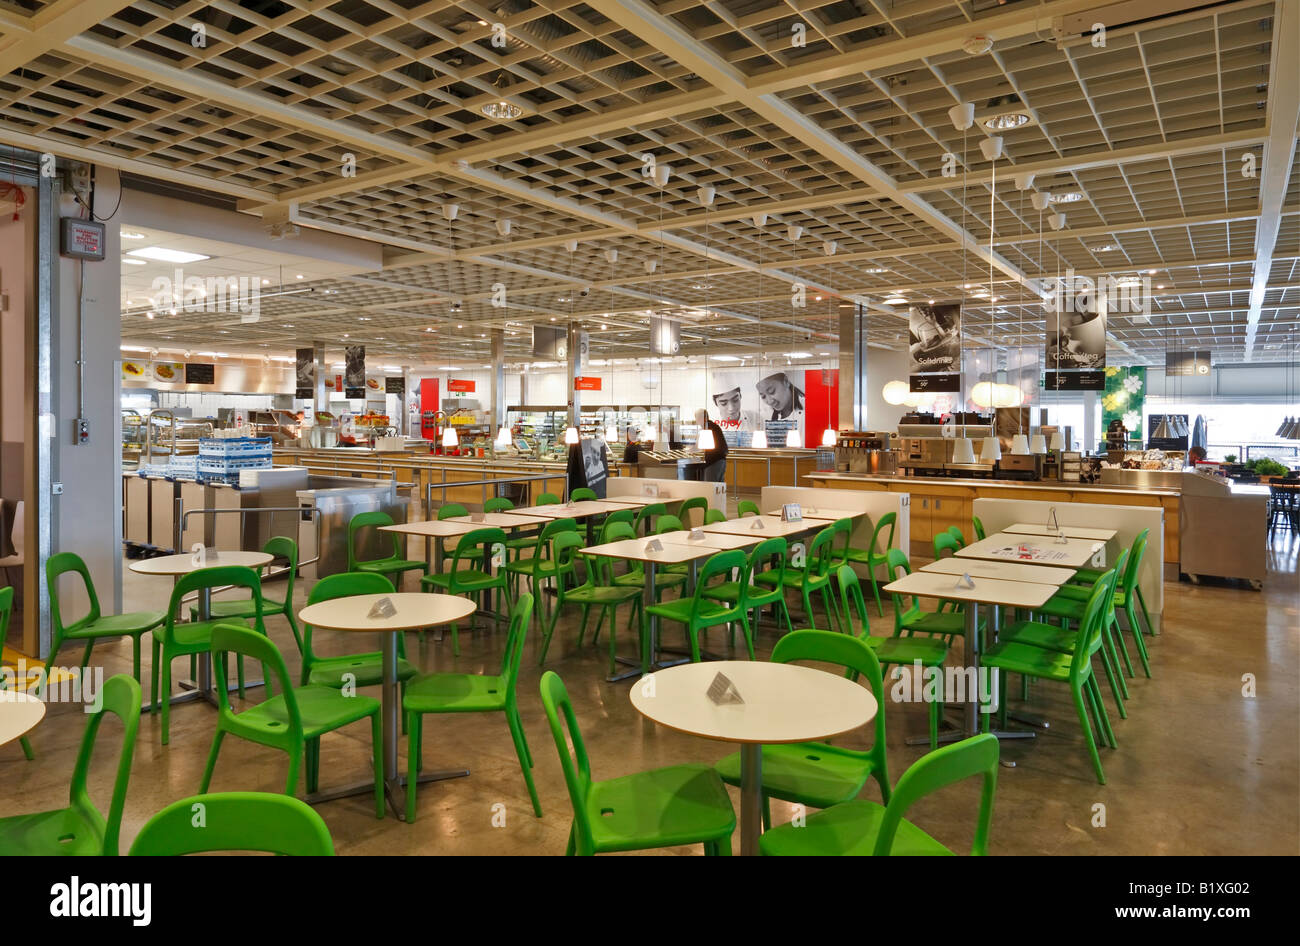 Restaurant Ikea Miami Of Restaurant Bei Ikea M Bel Lagern In Coventry Stockfoto